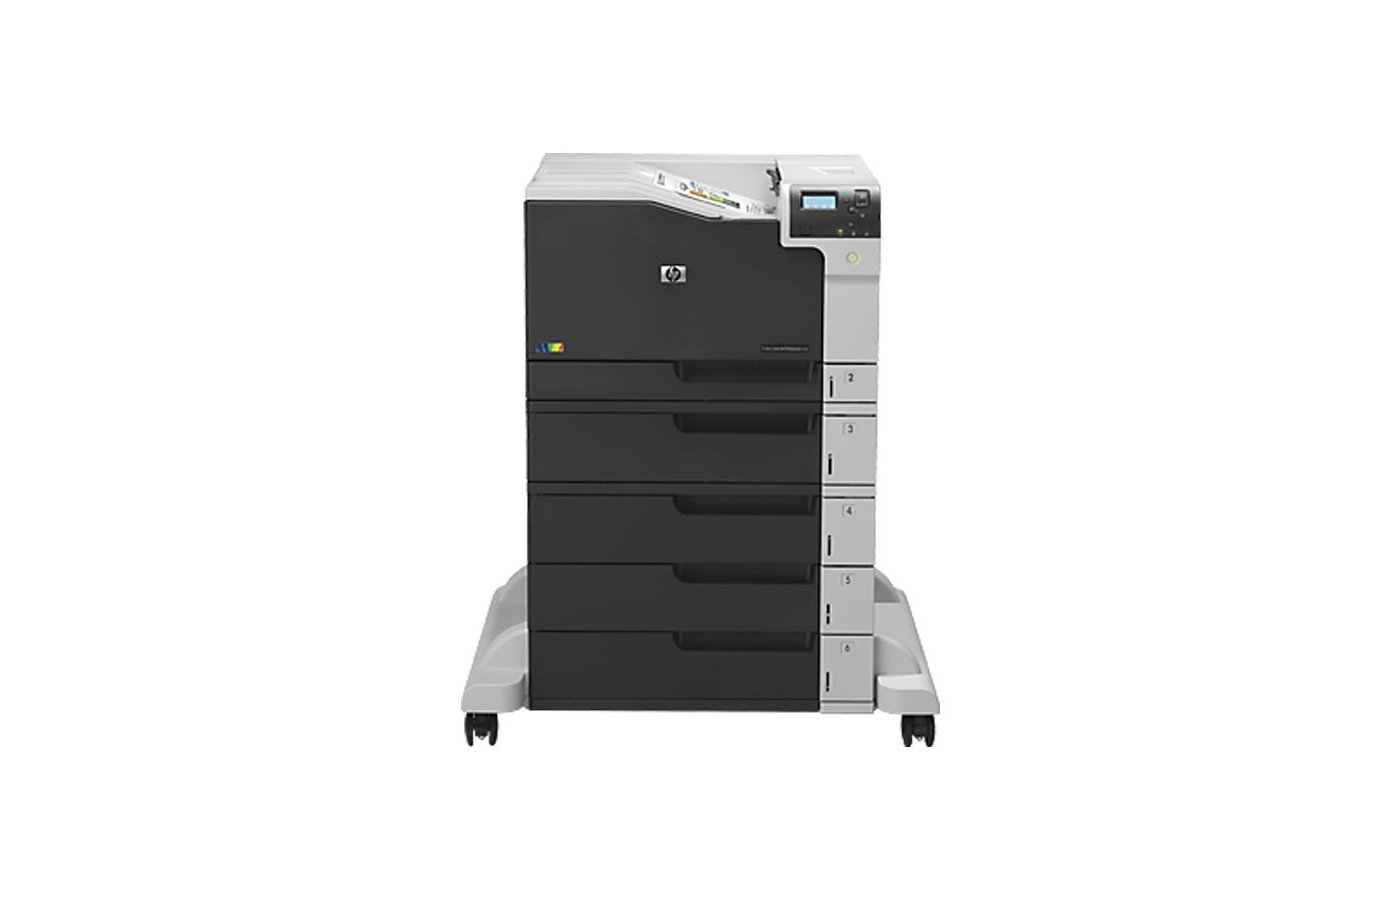 Принтер HP Color LaserJet Ent M750xh Printer /D3L10A/